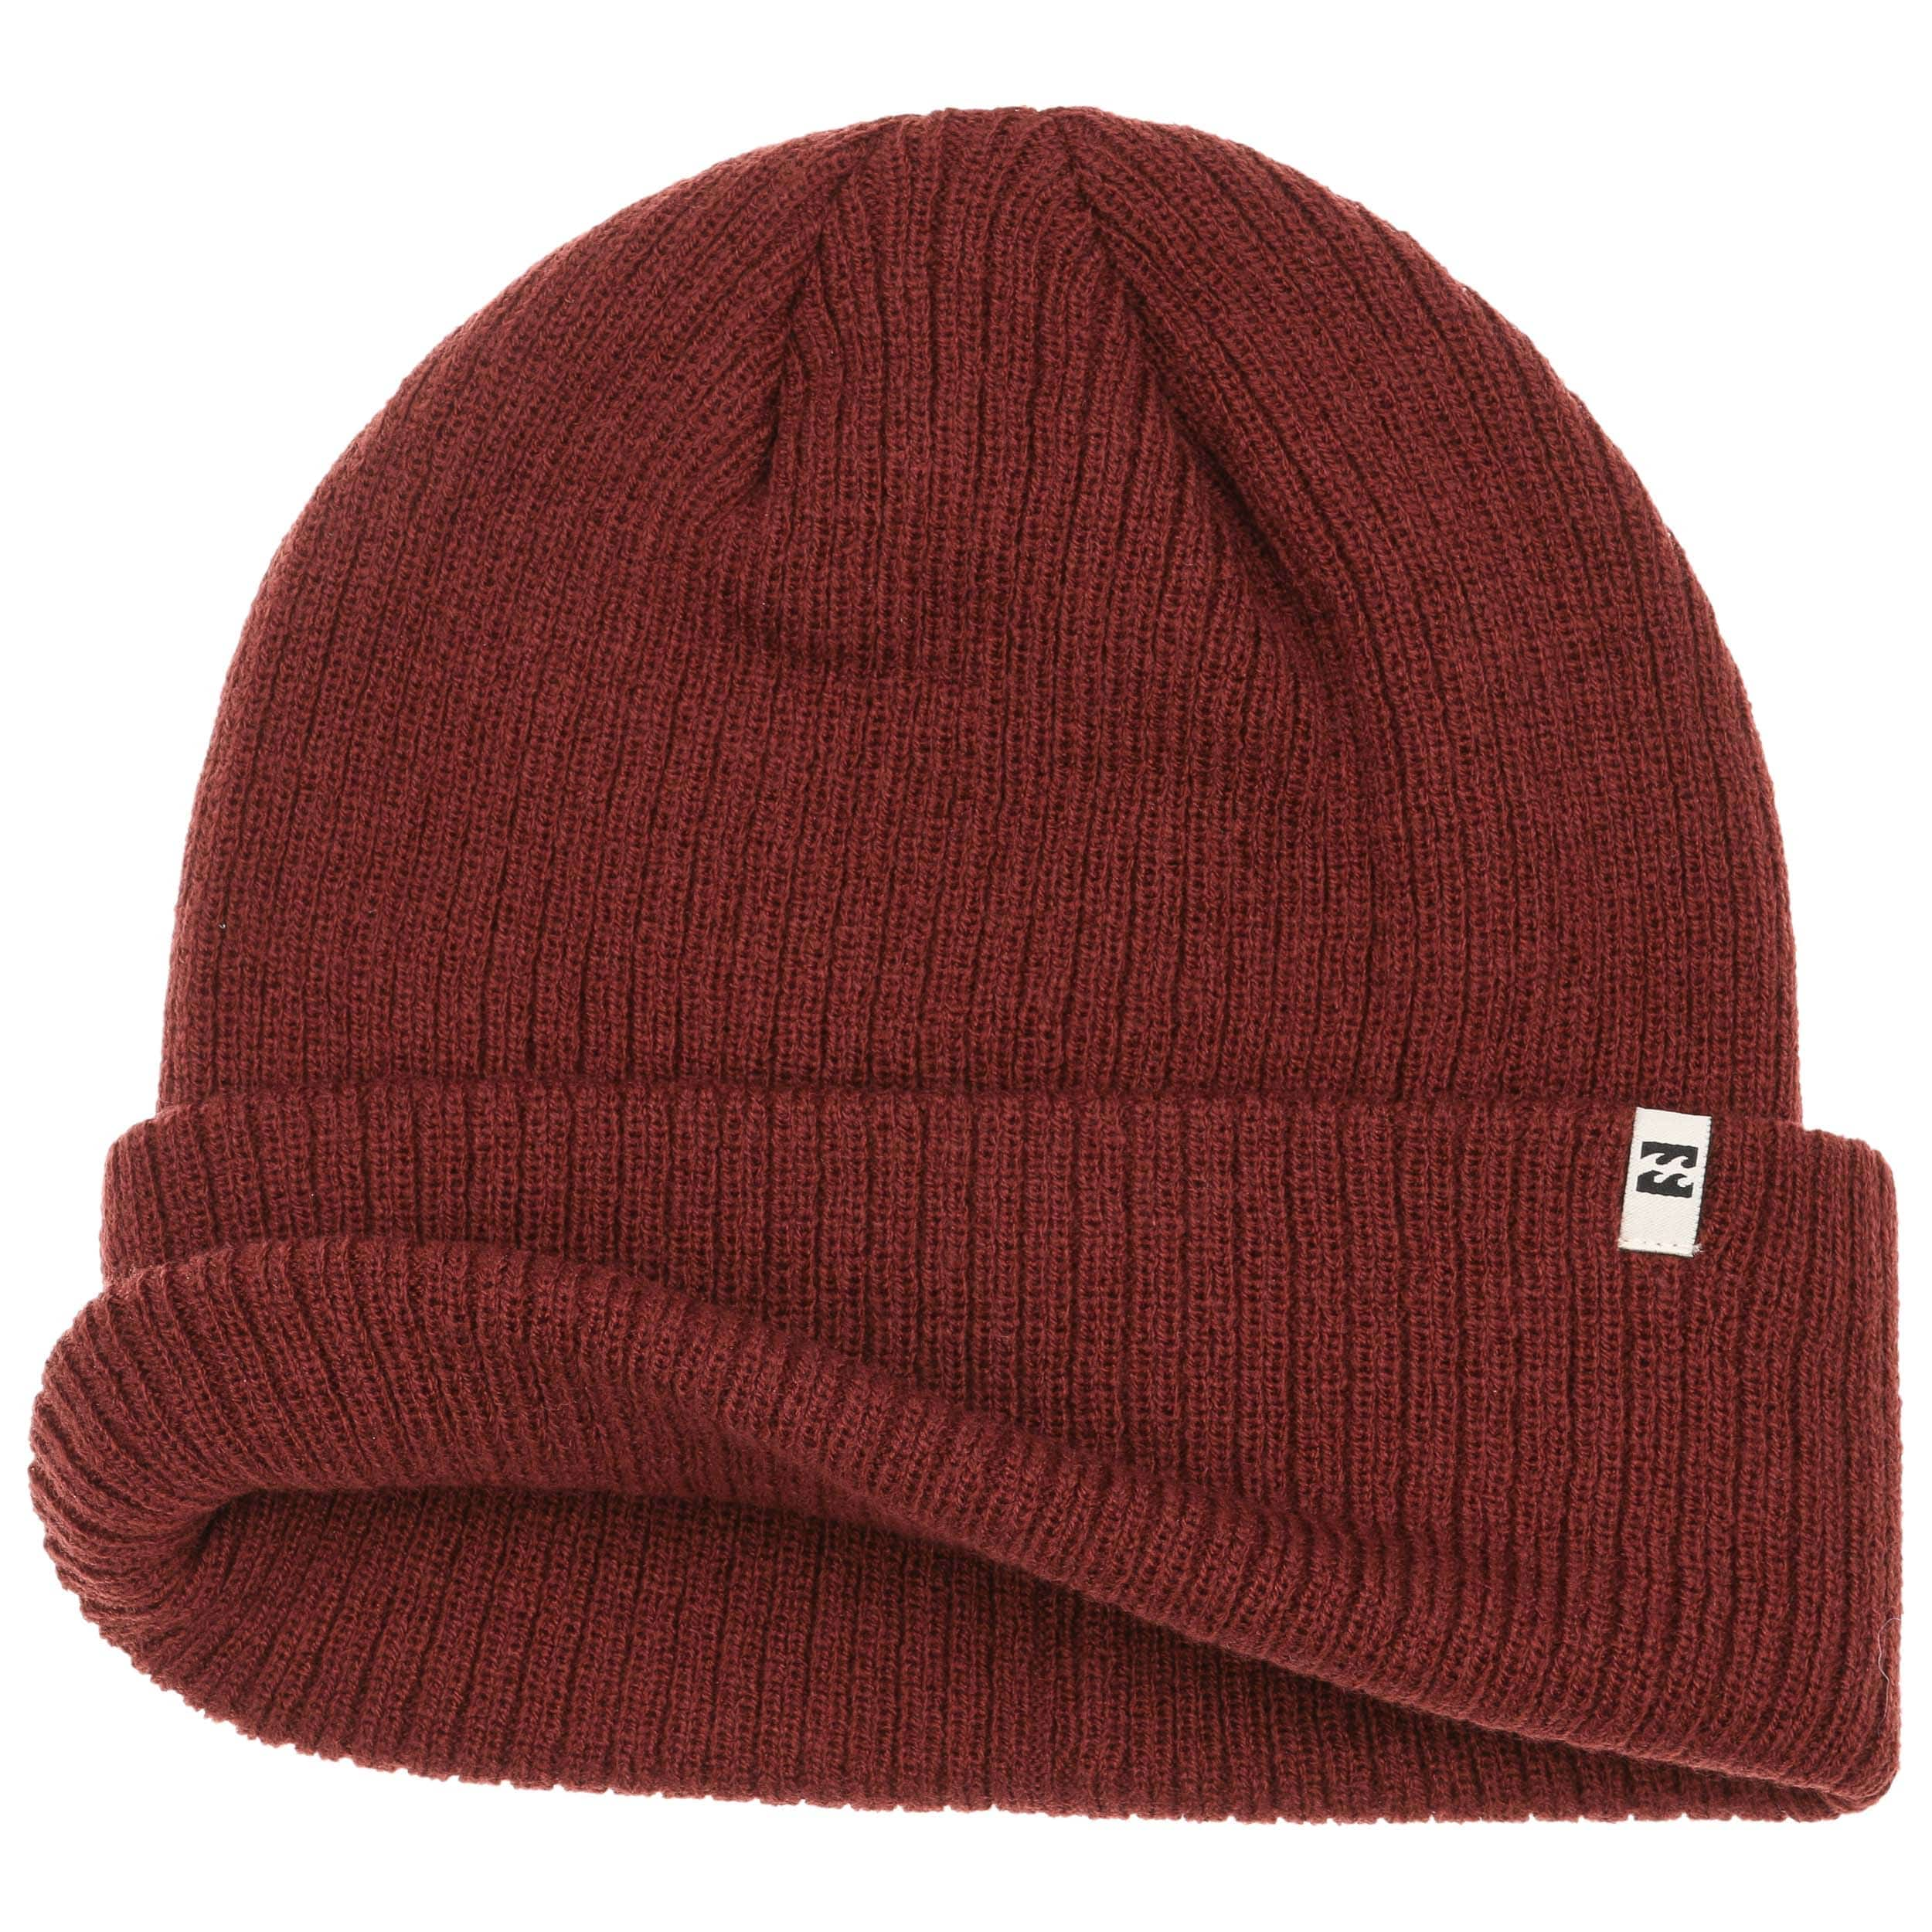 3fa1a646f93 ... Arcade Beanie by Billabong - bordeaux 1 ...